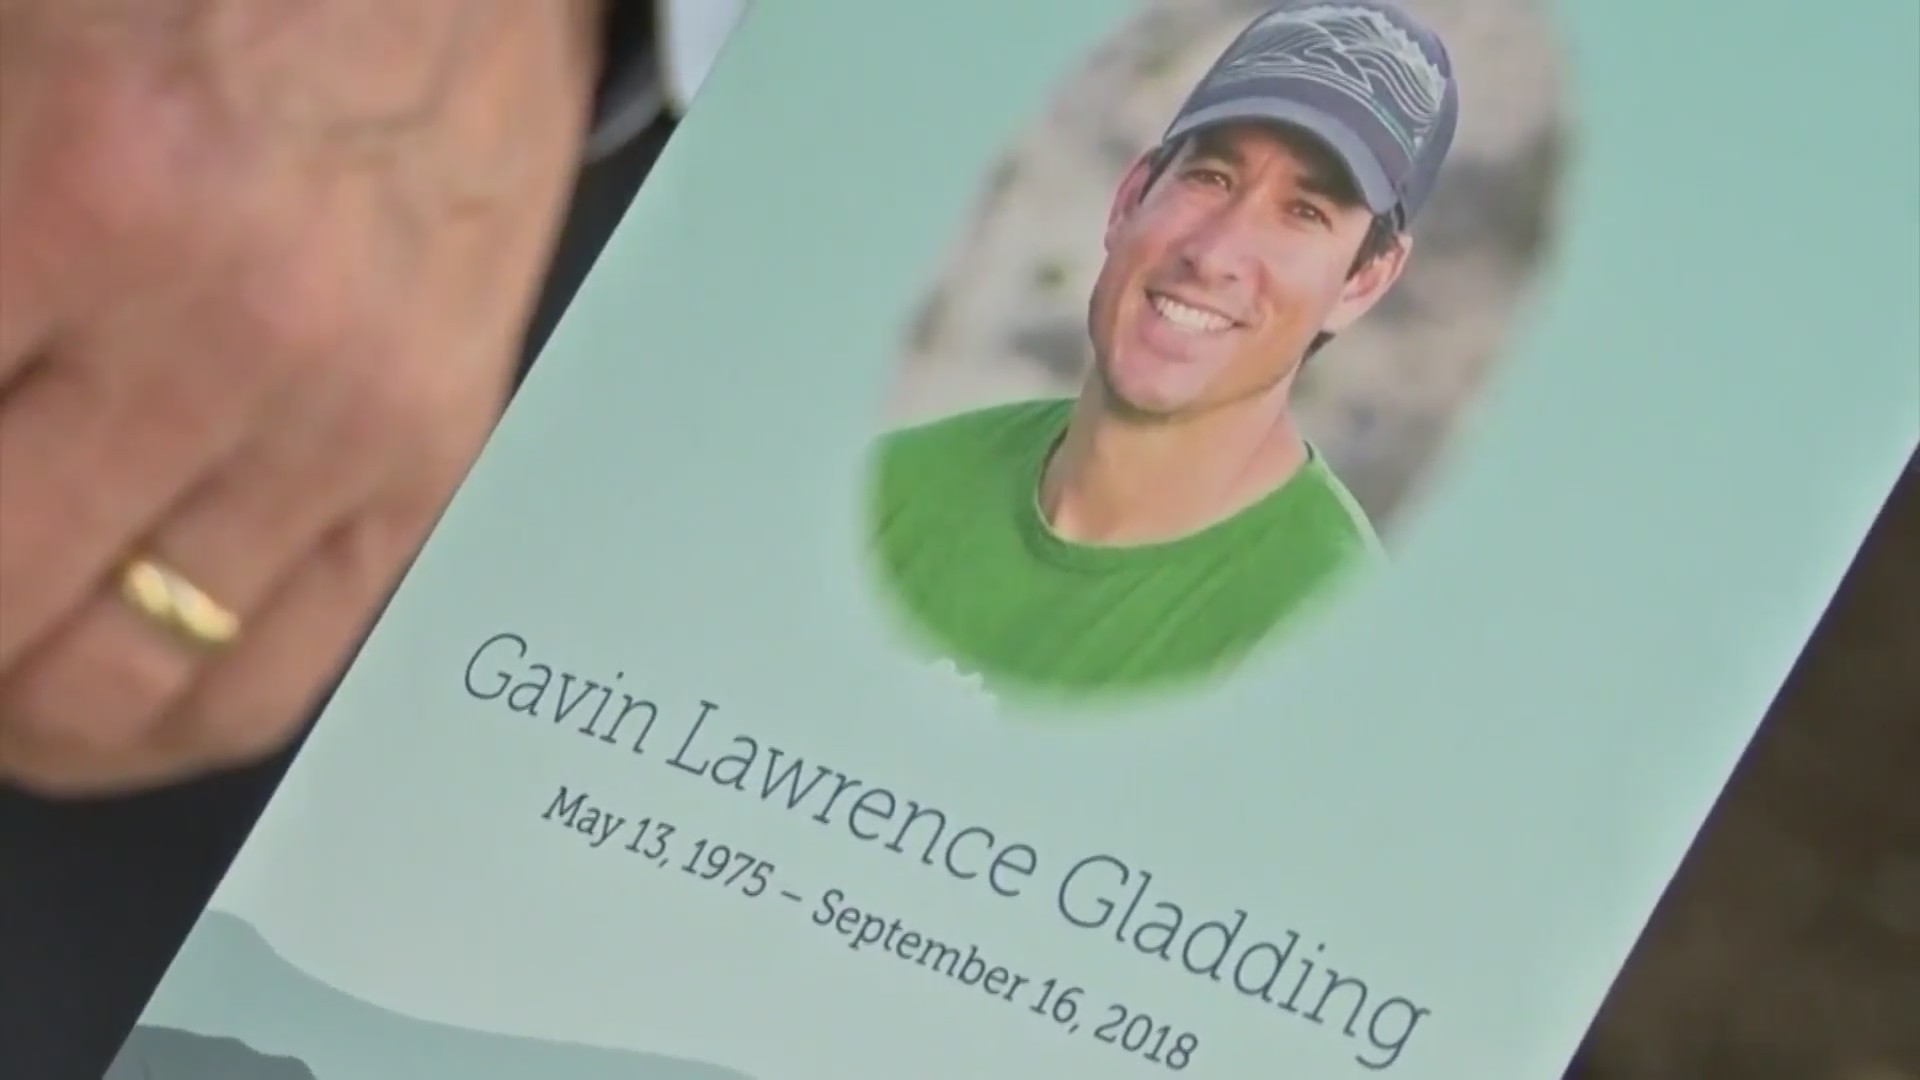 Gavin's Law fails by one vote in Senate committee